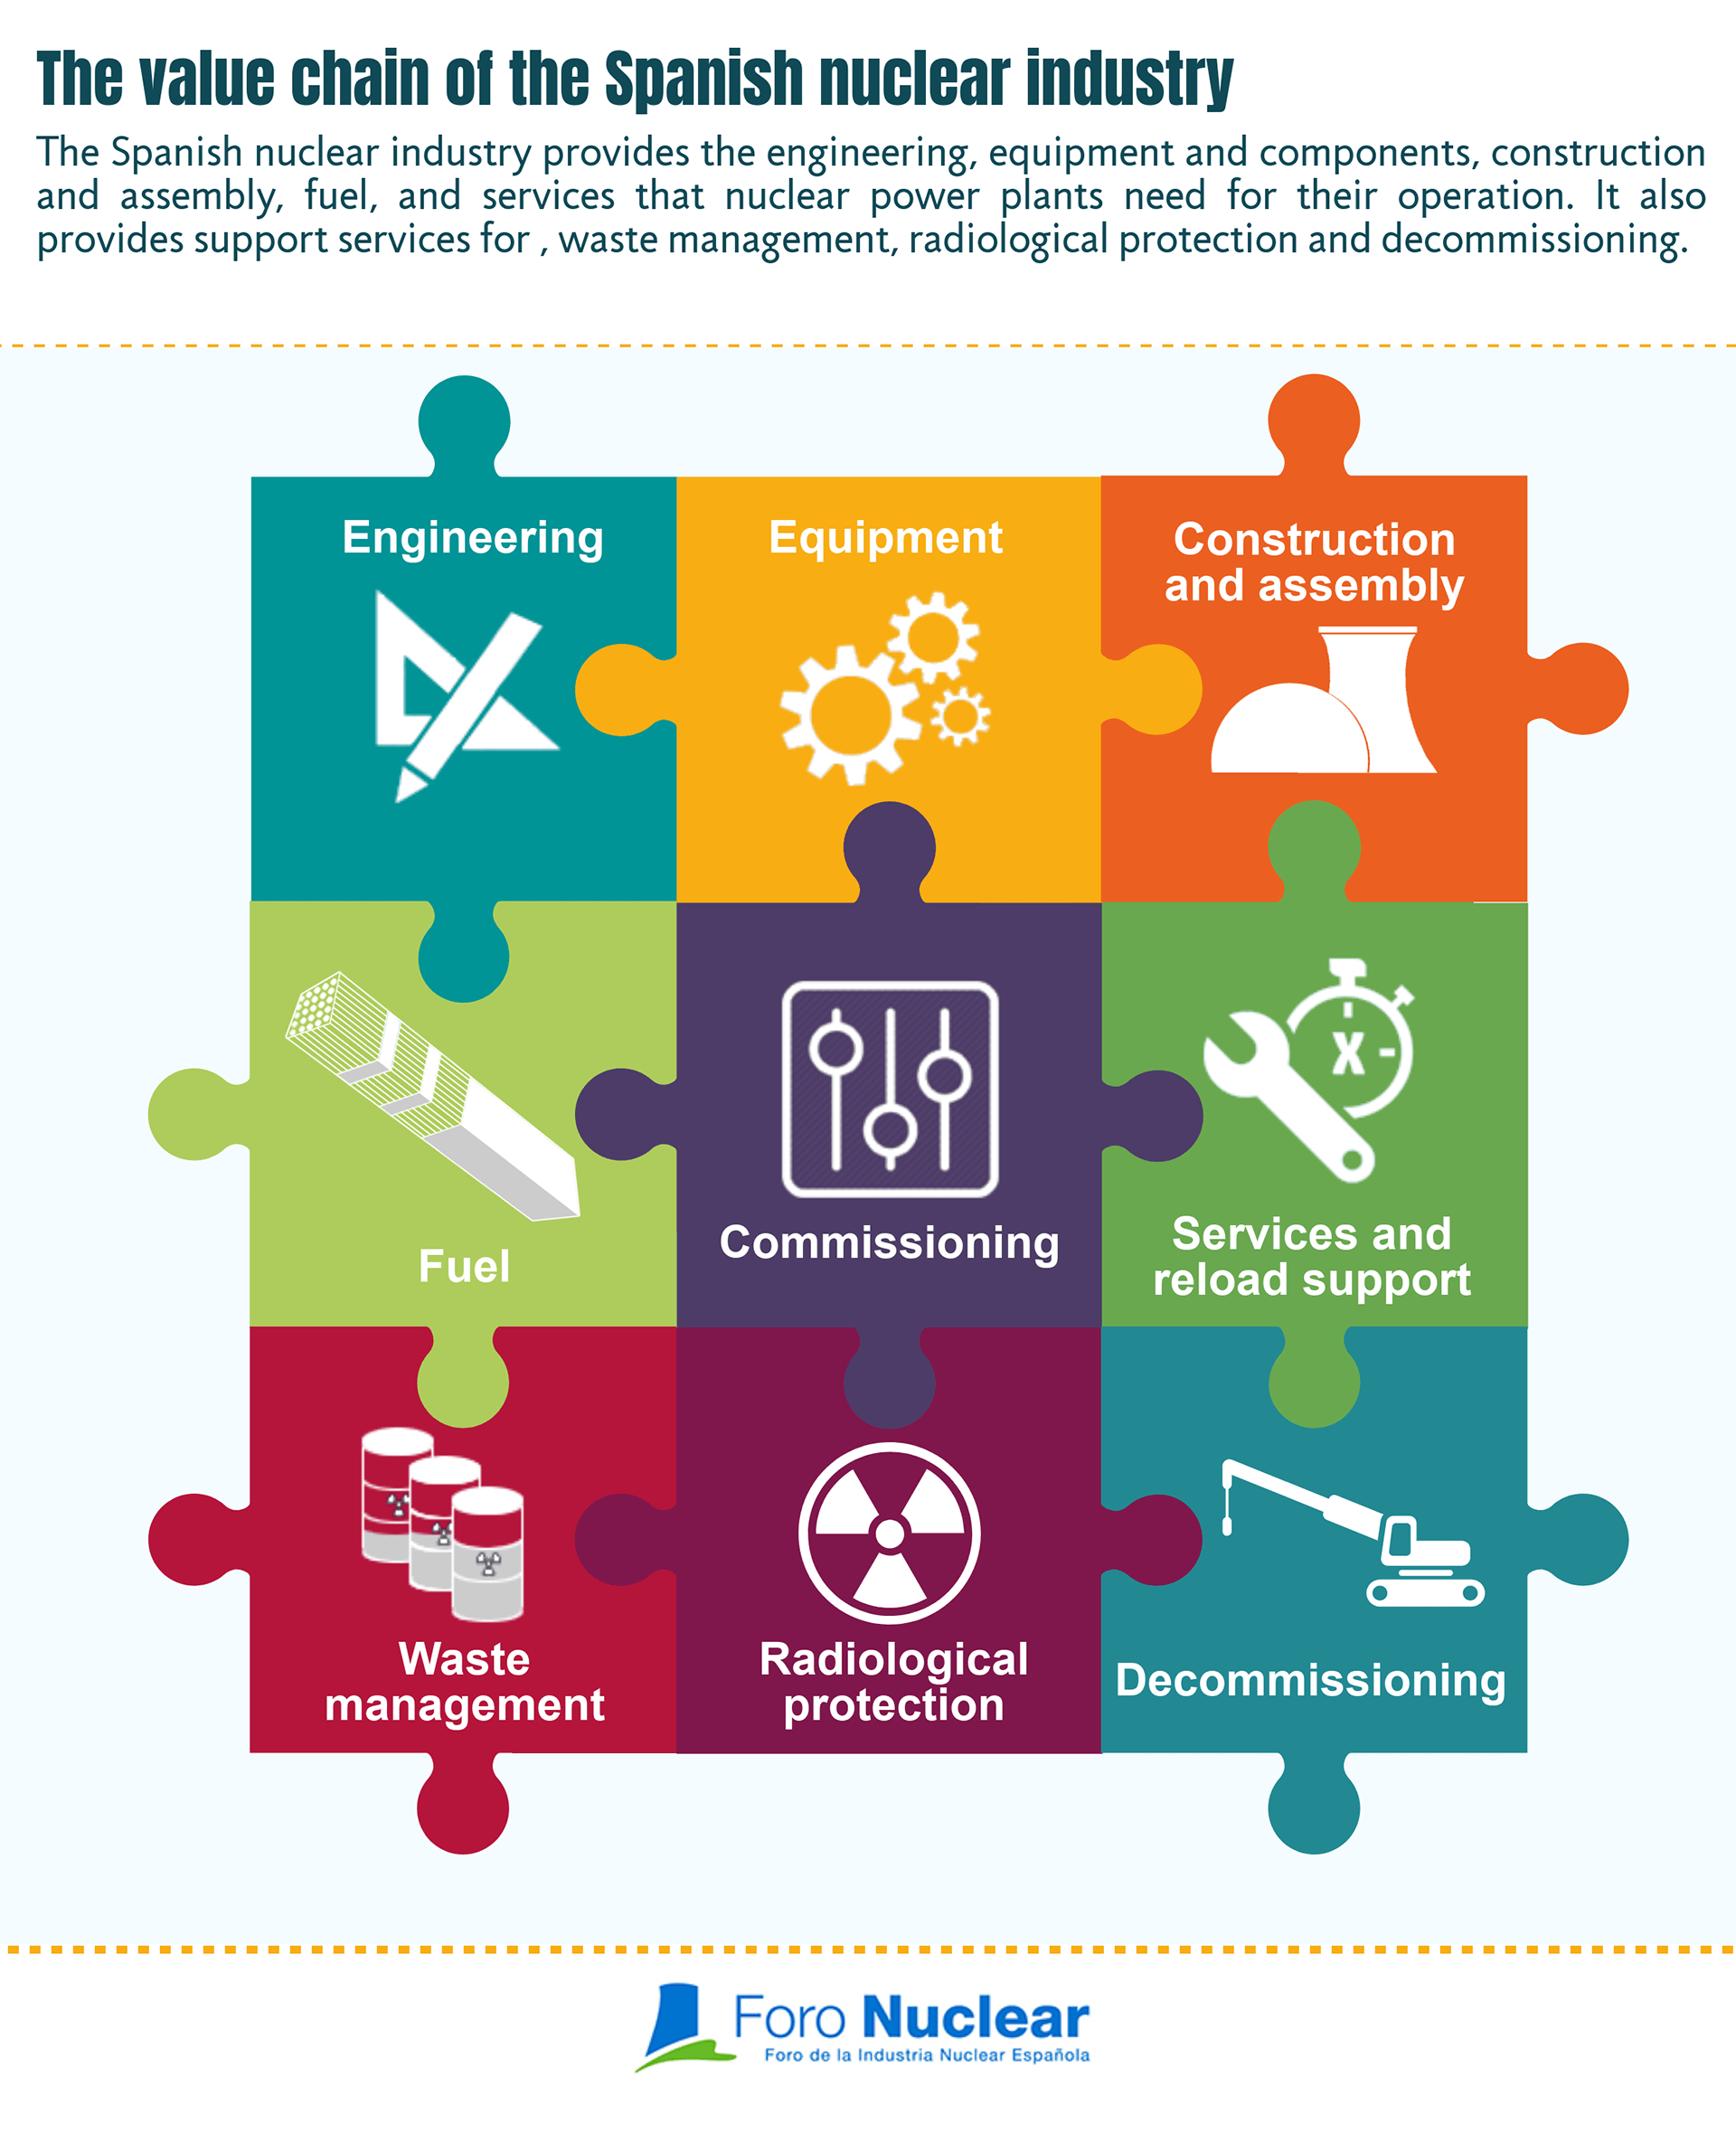 The value chain of the Spanish nuclear industry